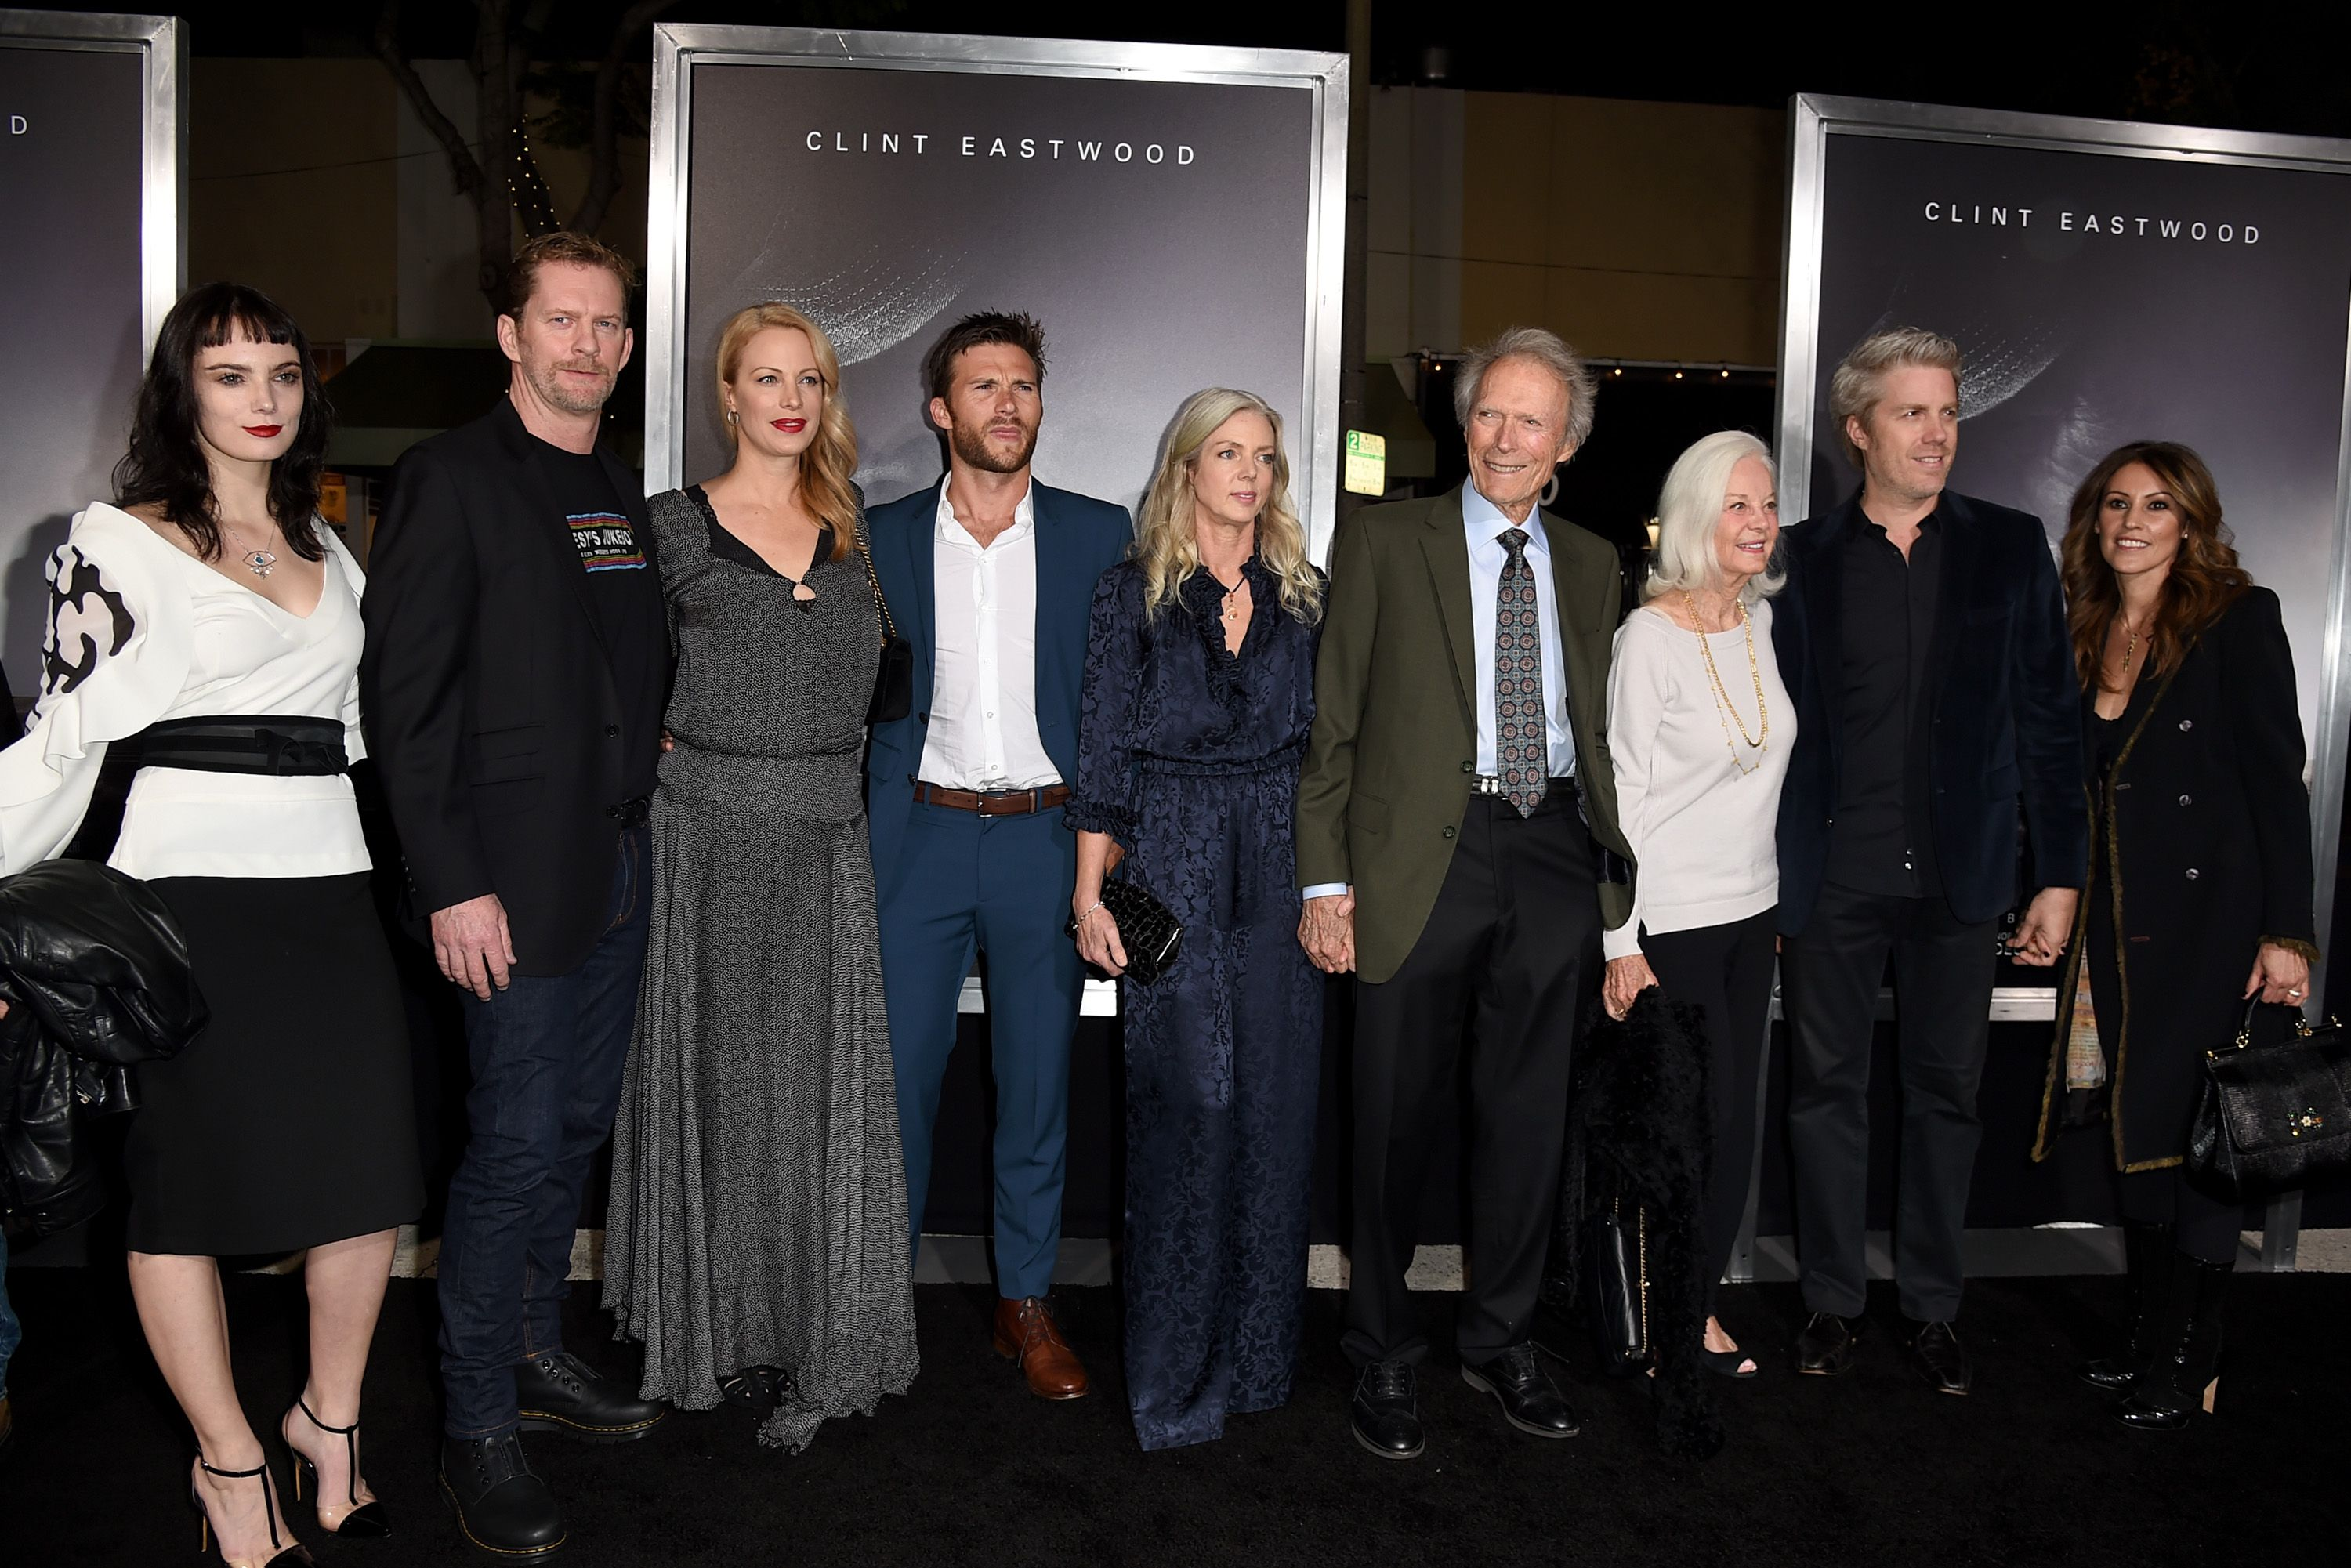 """Graylen Eastwood, Stacy Poitras, Alison Eastwood, Scott Eastwood, Christina Sandera, Clint Eastwood, Maggie Johnson, Kyle Eastwood and Cynthia Ramirez pose at the premiere of Warner Bros. Pictures' """"The Mule"""" at the Village Theatre on December 10, 2018 